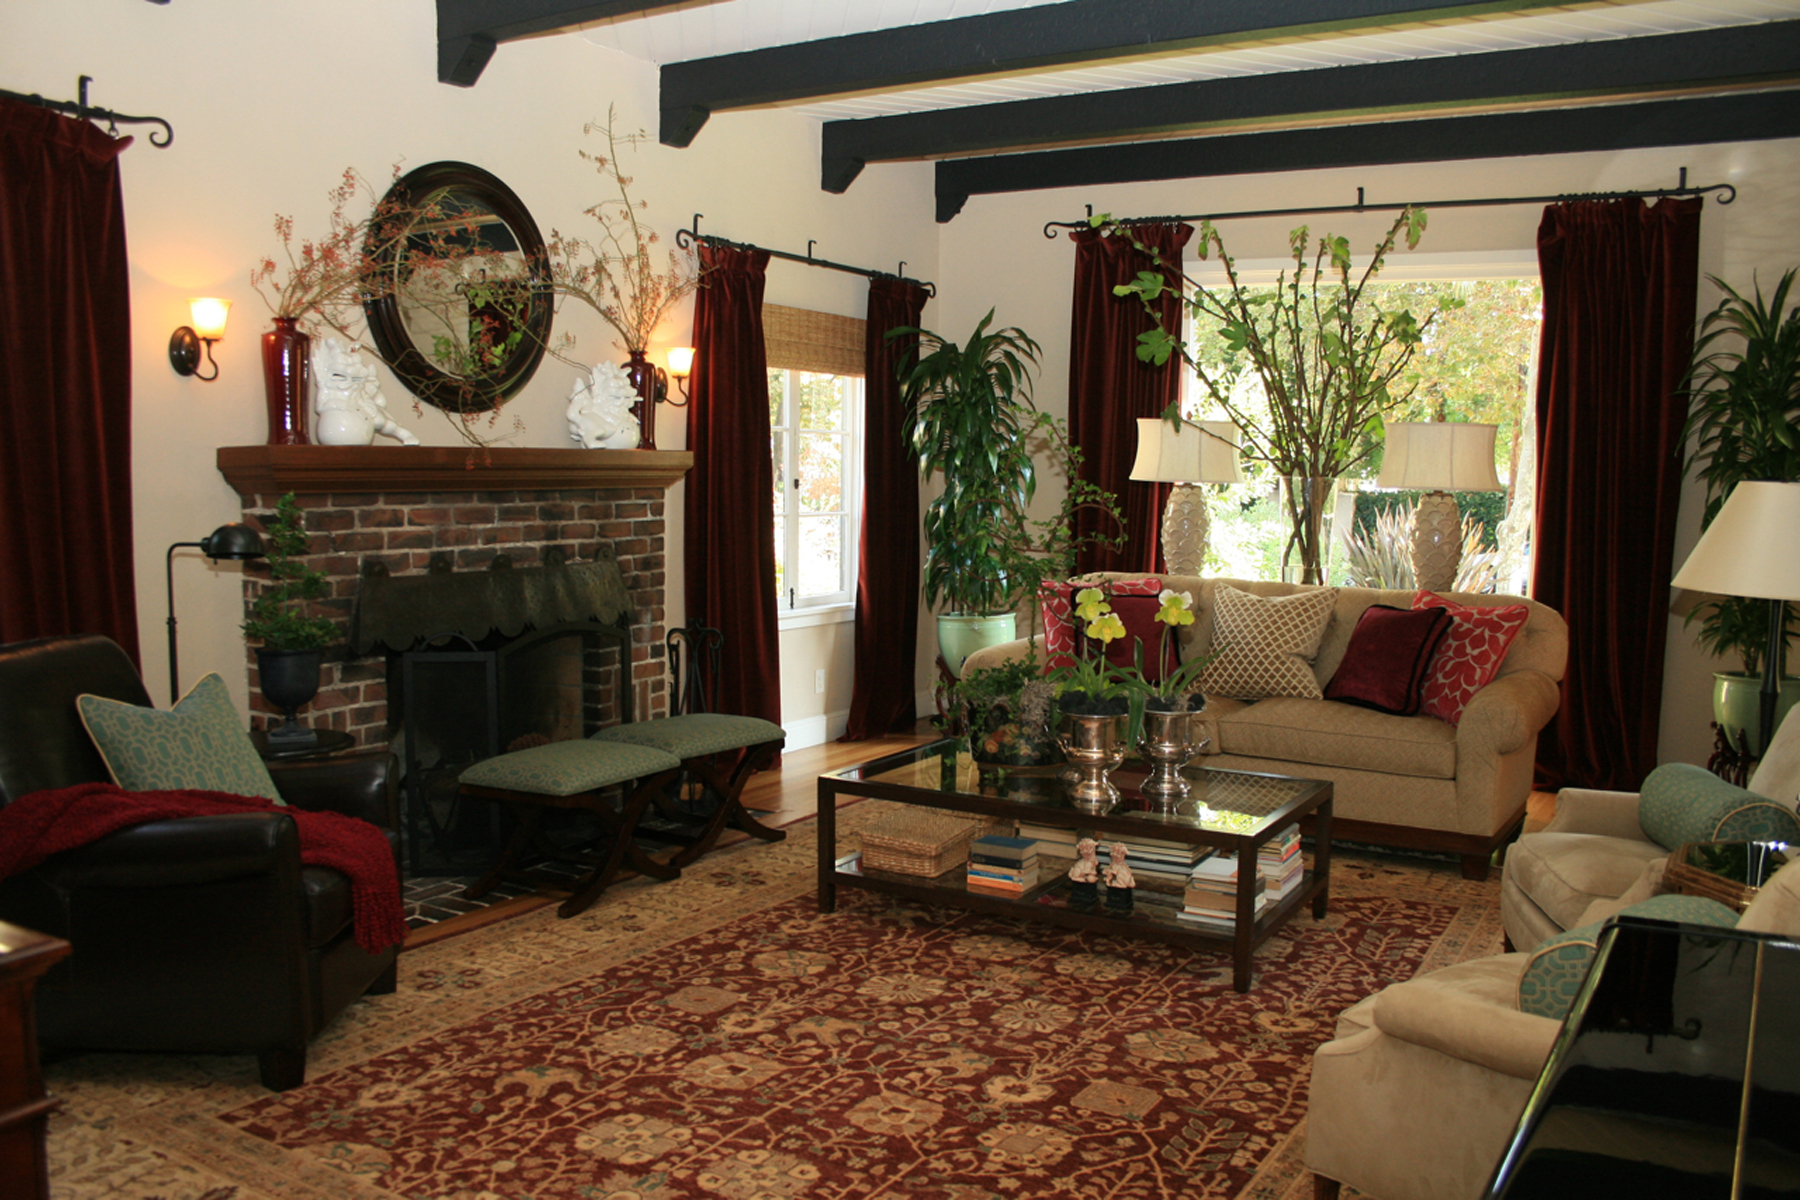 Interior Amazing Clic Spanish Style Of Living Room Design With Stone Fireplace Red Curtain Large Carpet